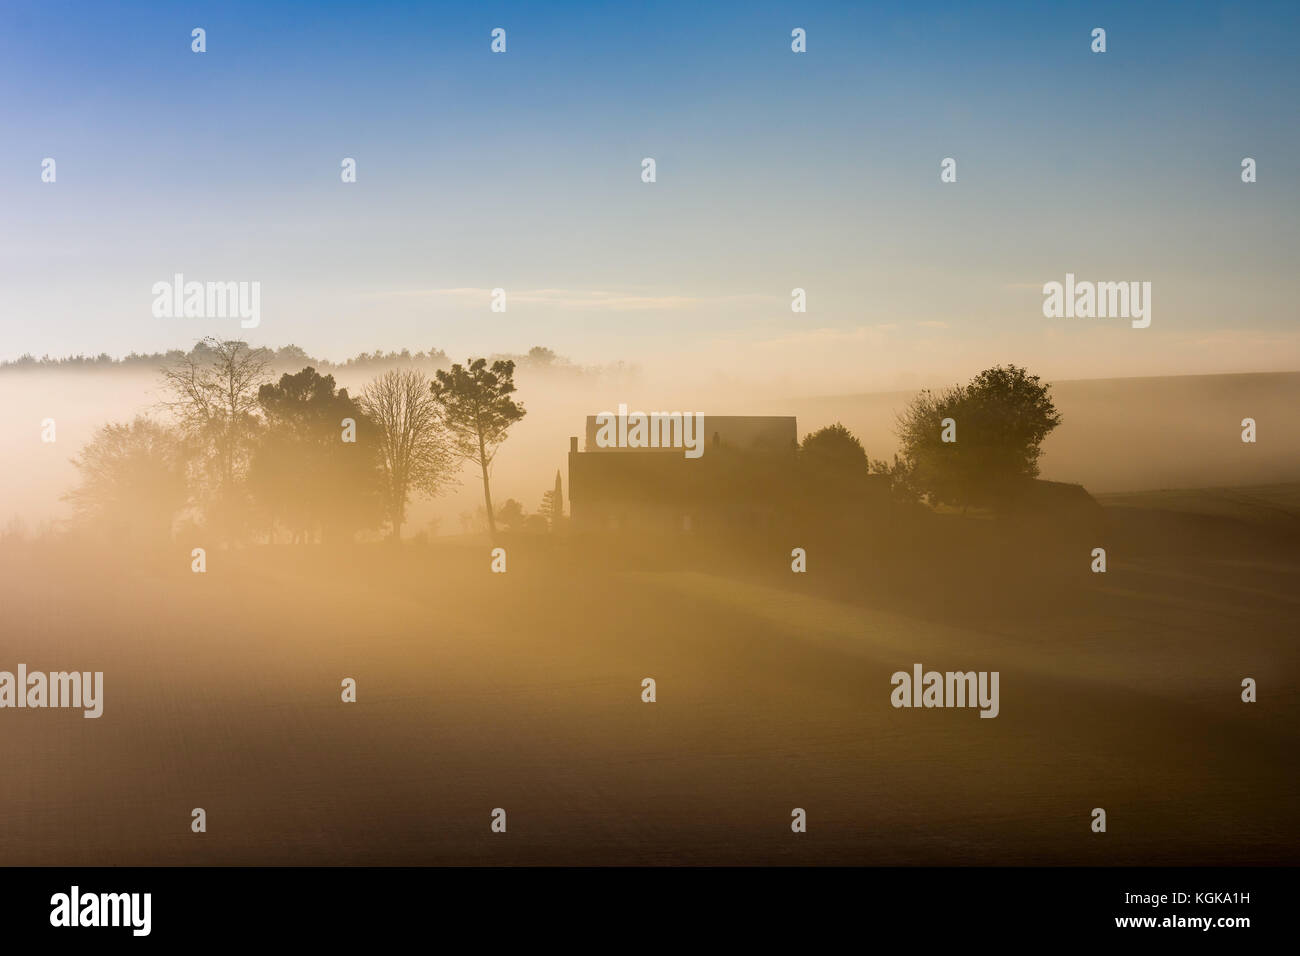 Silhouette of farmhouse in misty landscape at dawn - France. - Stock Image